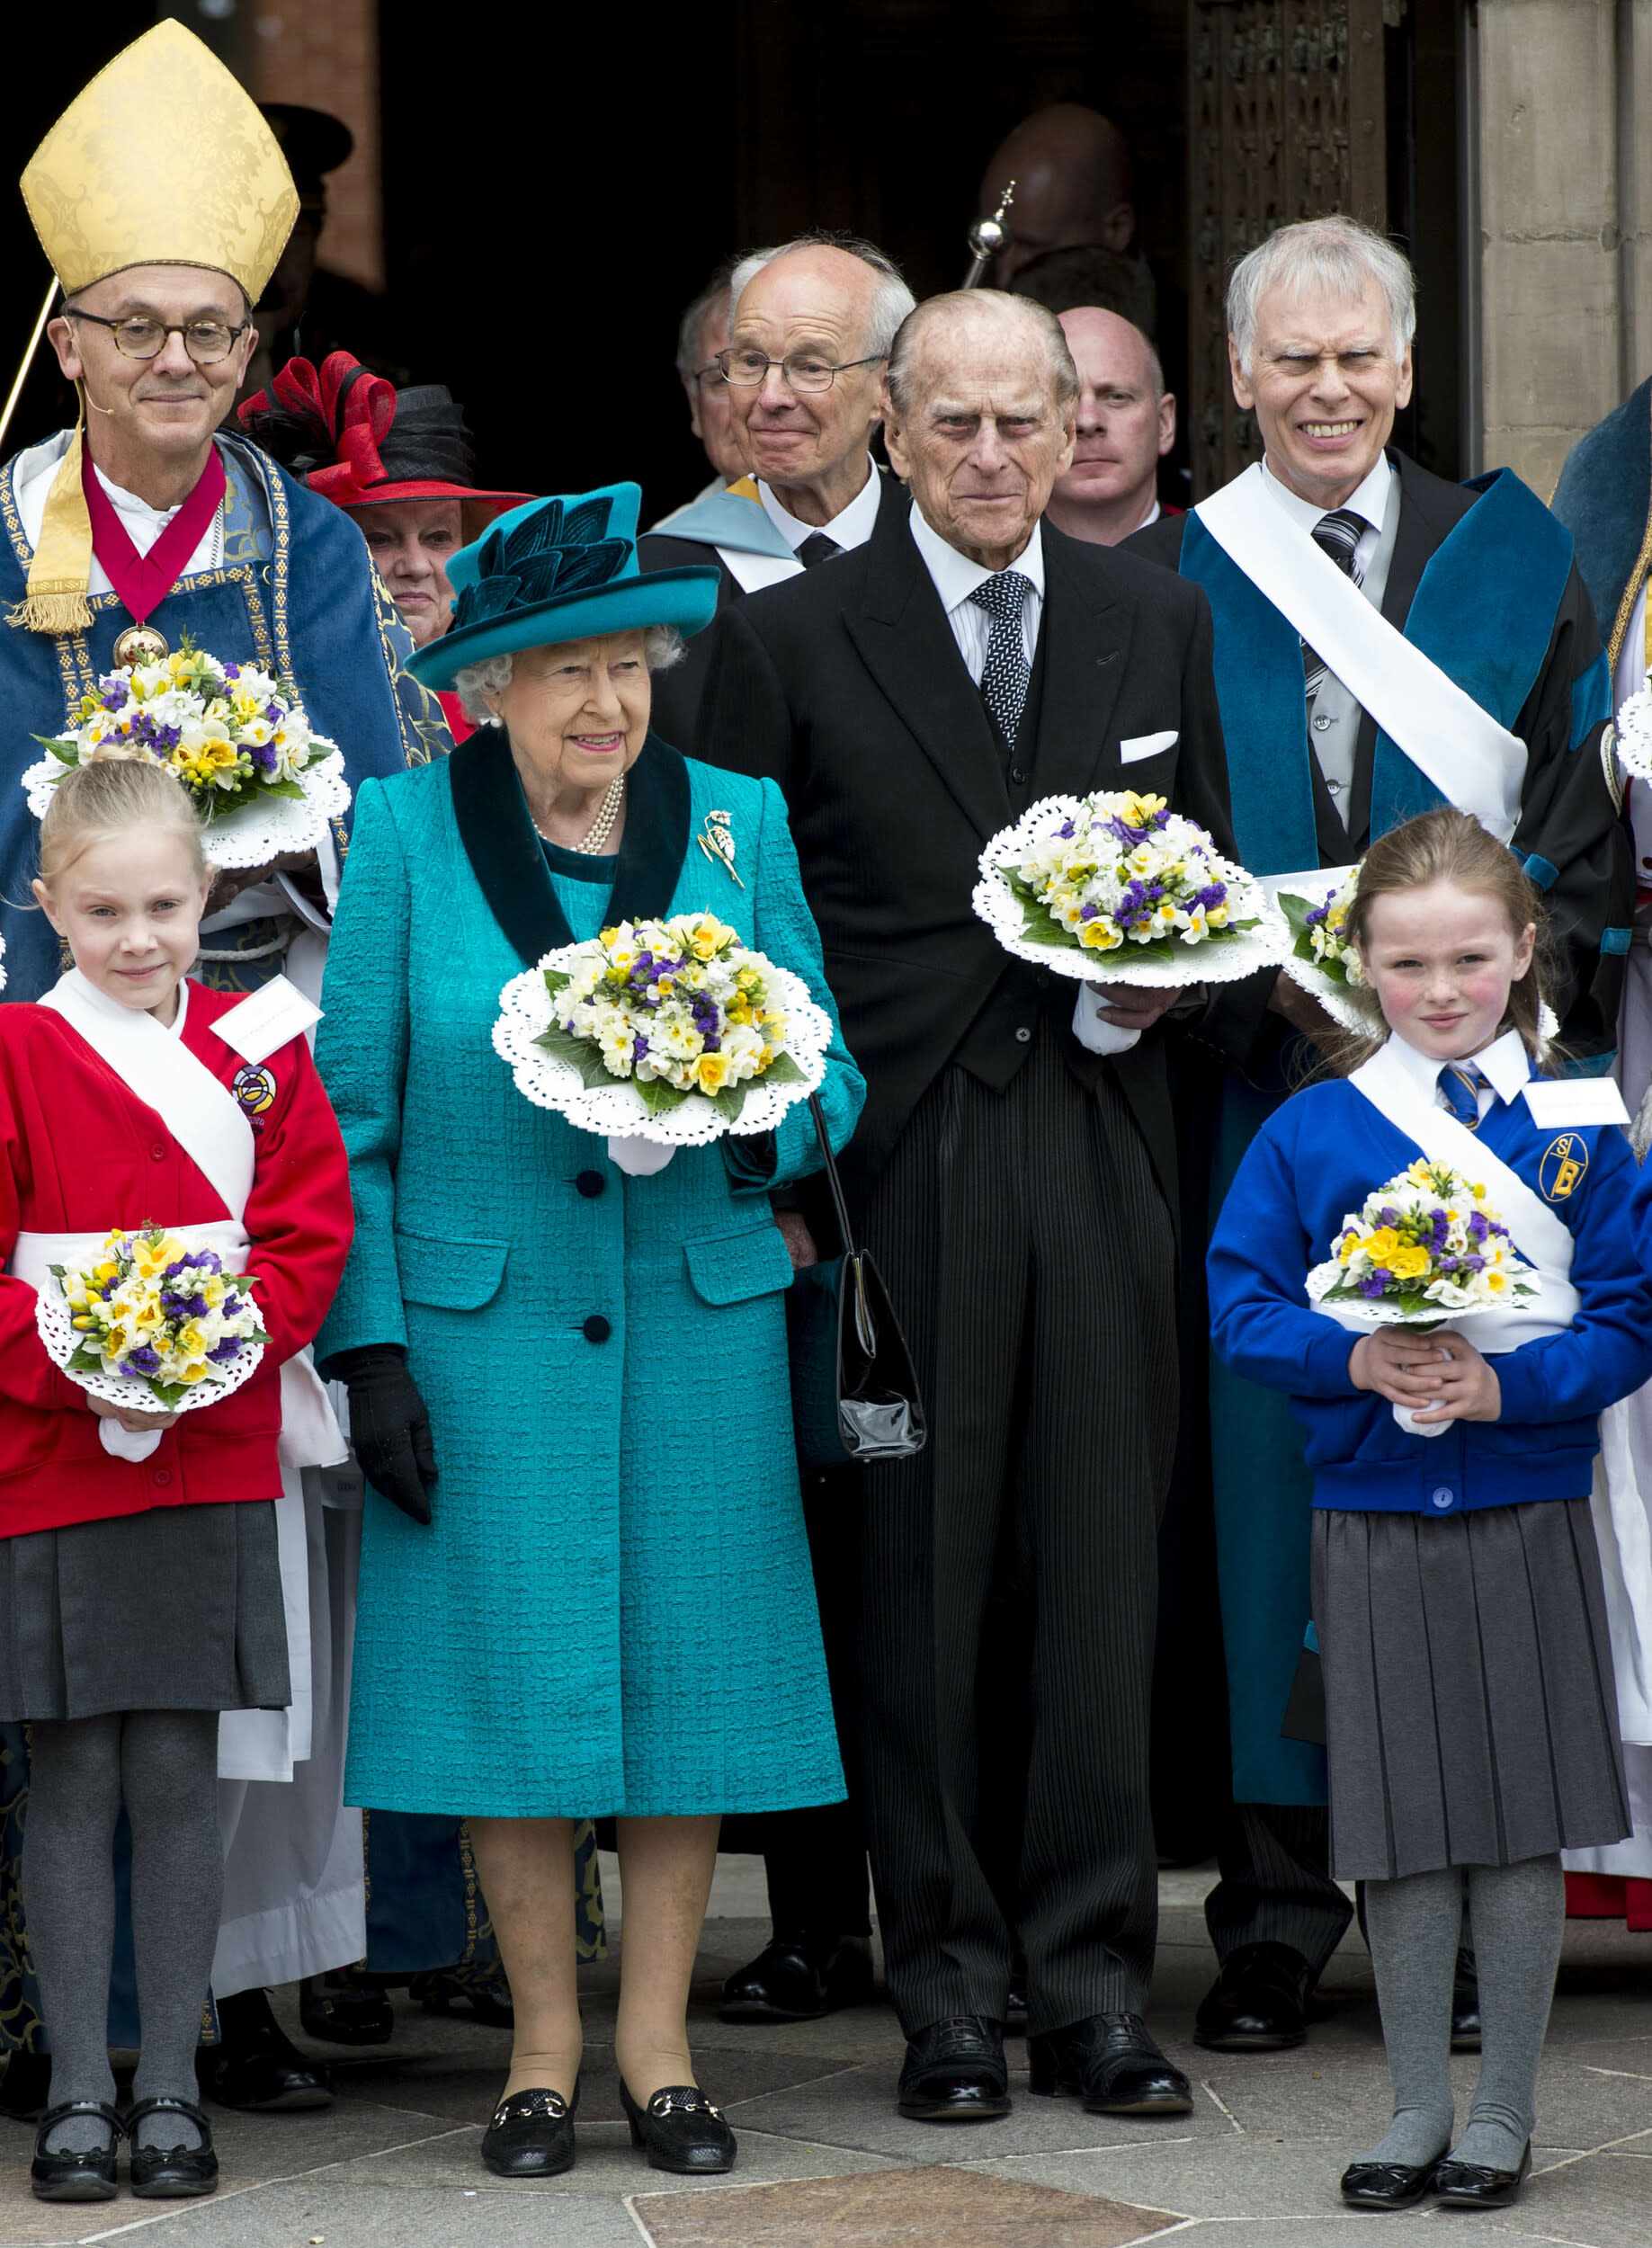 Photo by: KGC-178/STAR MAX/IPx 2017 4/13/17 Queen Elizabeth II and Prince Philip, Duke of Edinburgh attend the Royal Maundy service at Leicester Cathedral in Leicester.